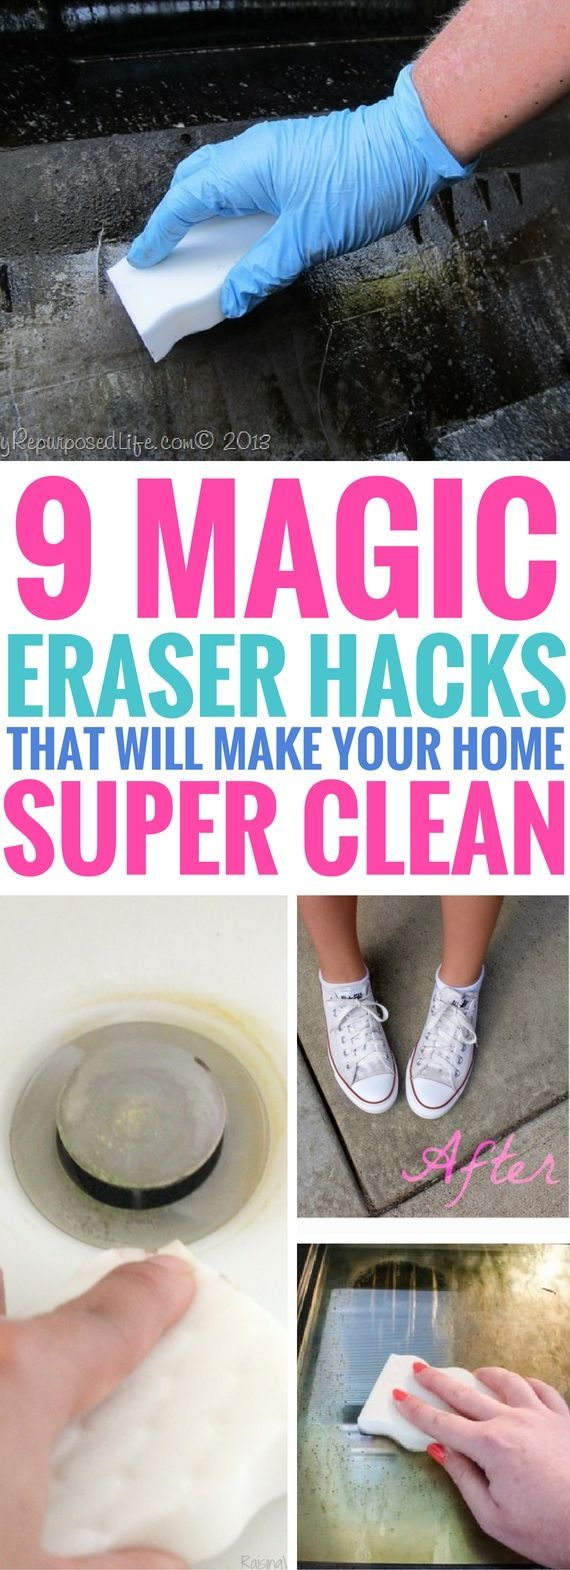 Magic eraser hacks that are seriously BRILLIANT! So many unexpected new uses to clean many things quickly! Make sure to check out the before and after hacks, they will blow your mind!